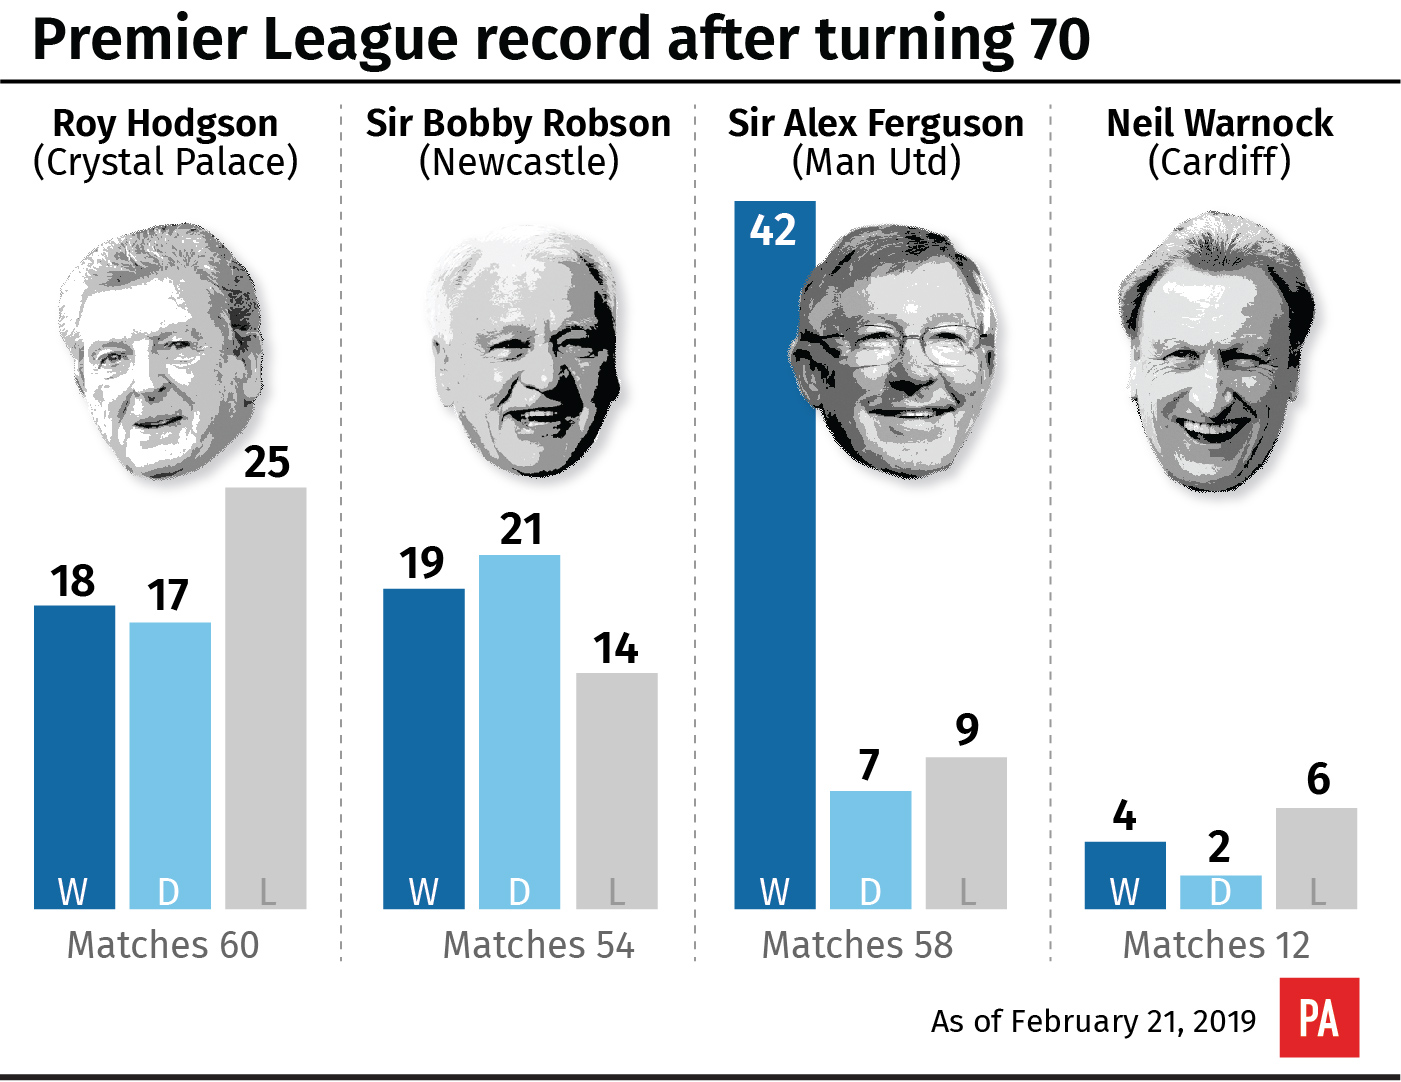 Premier League managerial record after turning 70